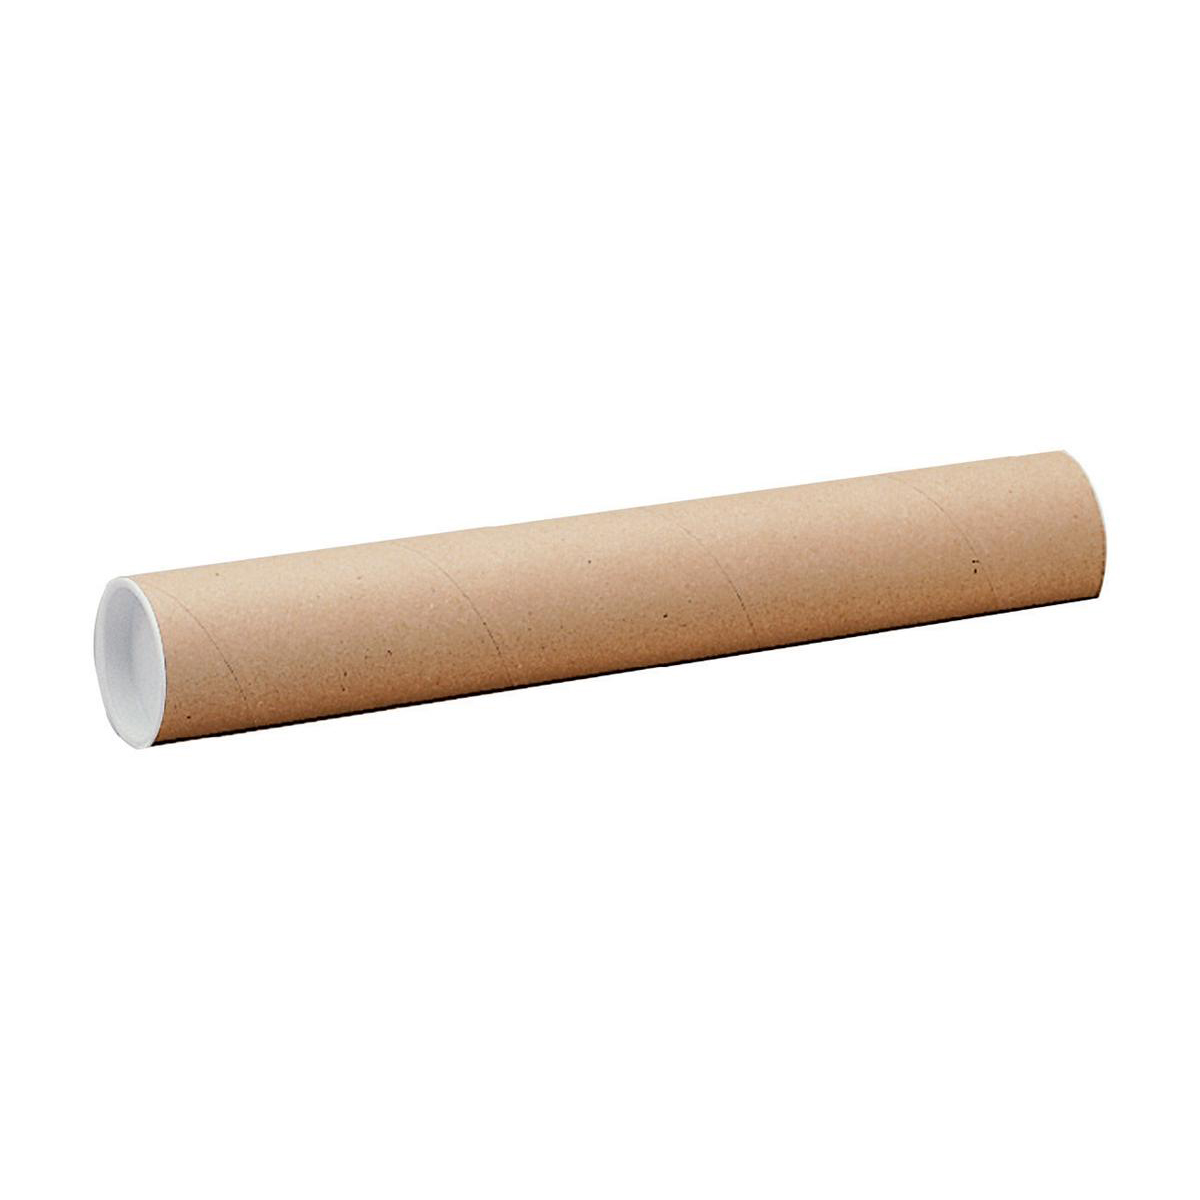 Postal Tube Cardboard with Plastic End Caps A2 L450xDia.50mm PT 450/50MM [Pack 25]